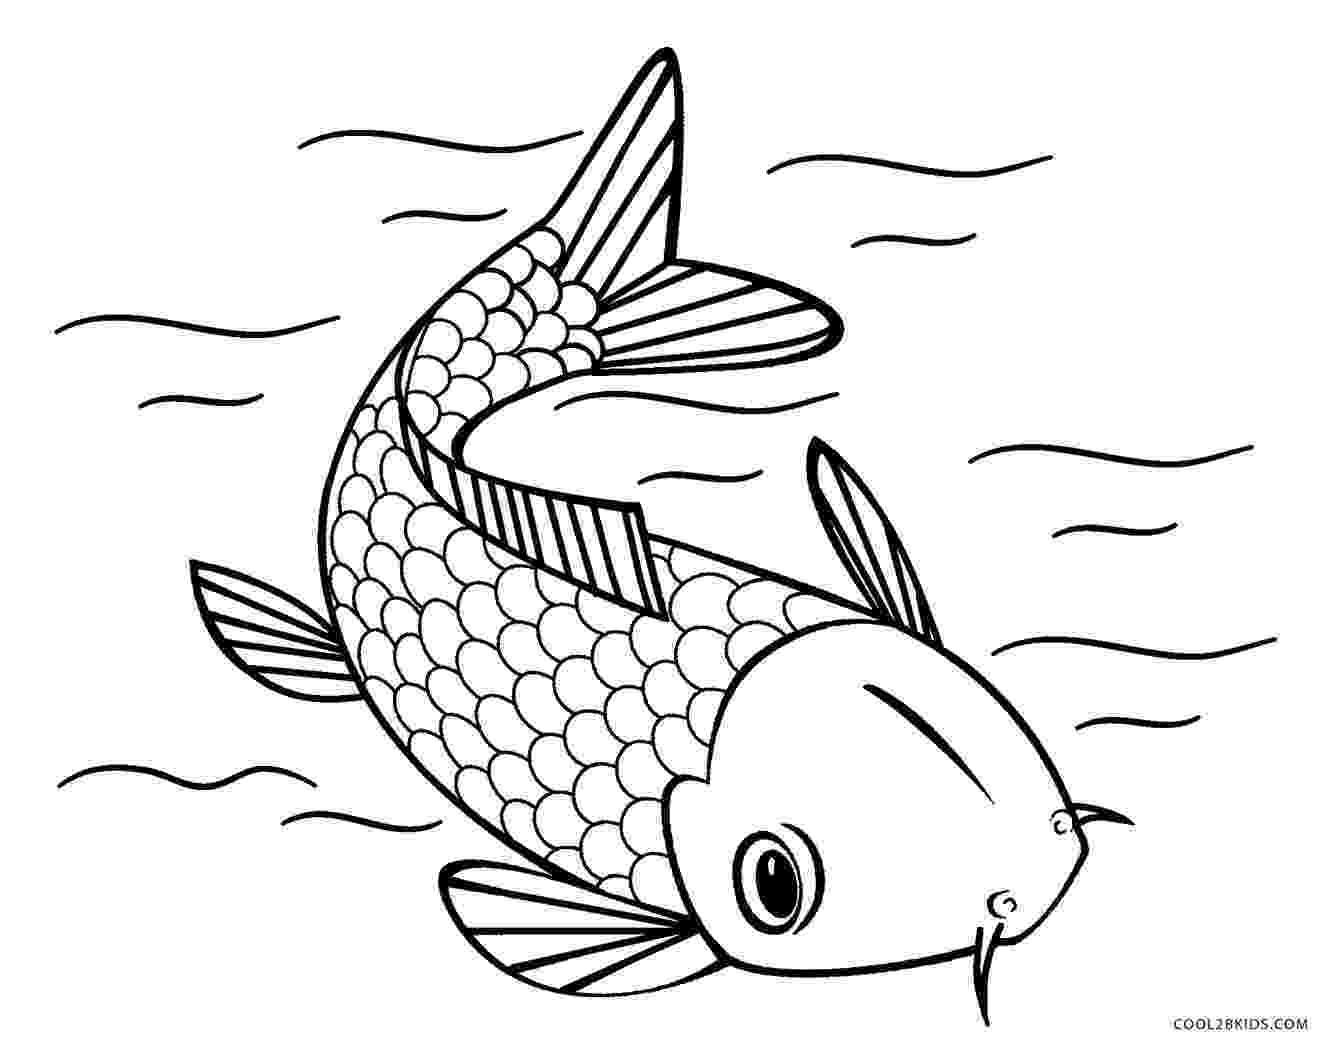 fish coloring pages to print fish coloring pages coloring pages fish print to